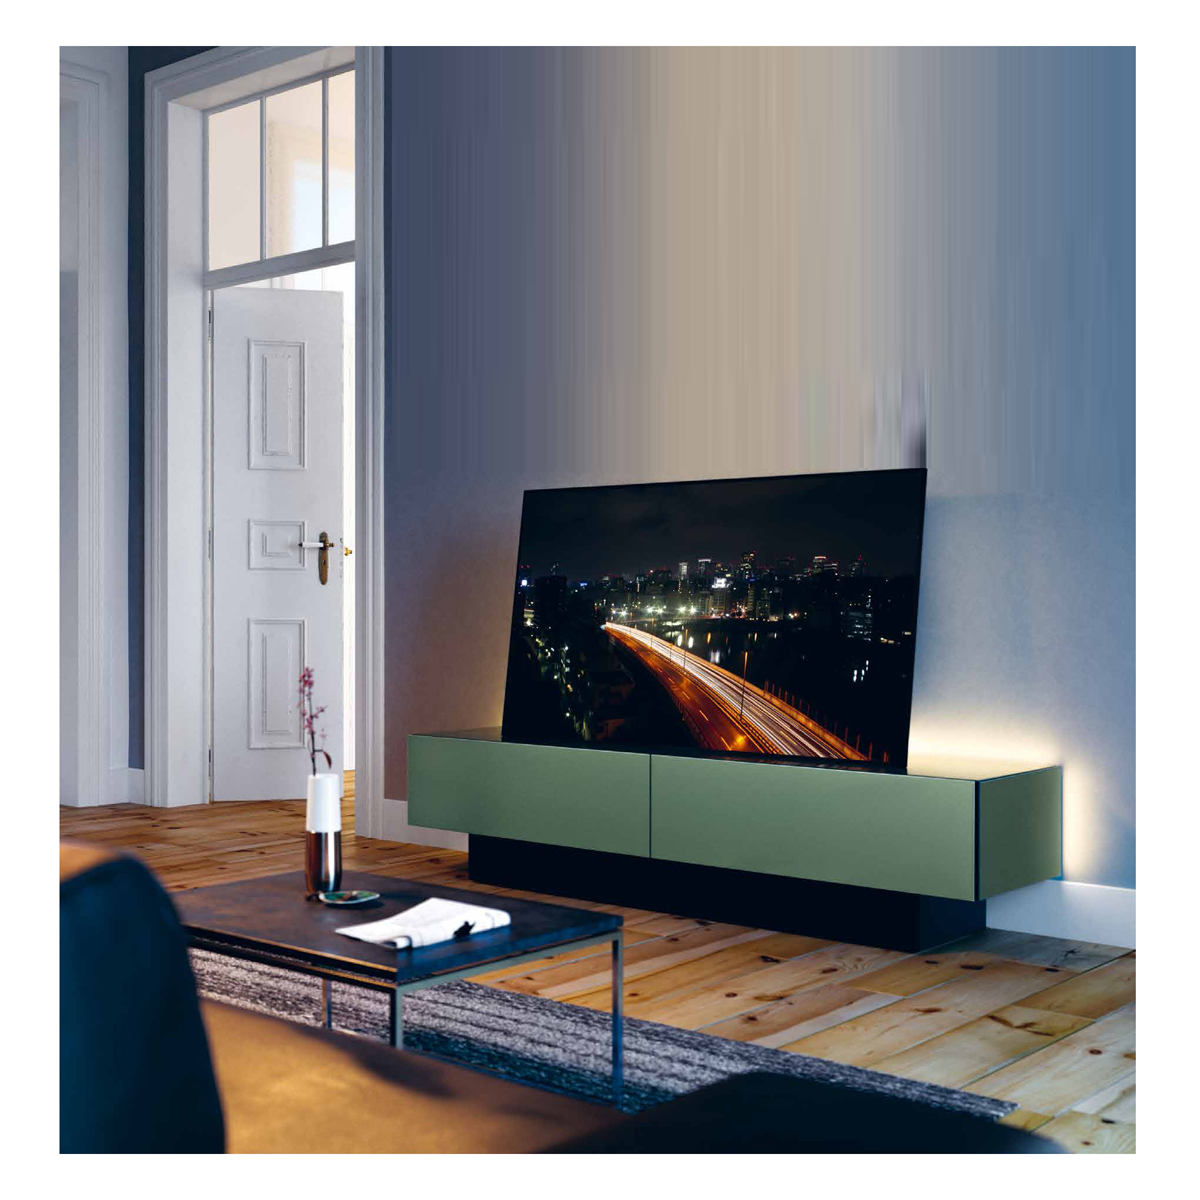 spectral bei hifi tv seite 1. Black Bedroom Furniture Sets. Home Design Ideas